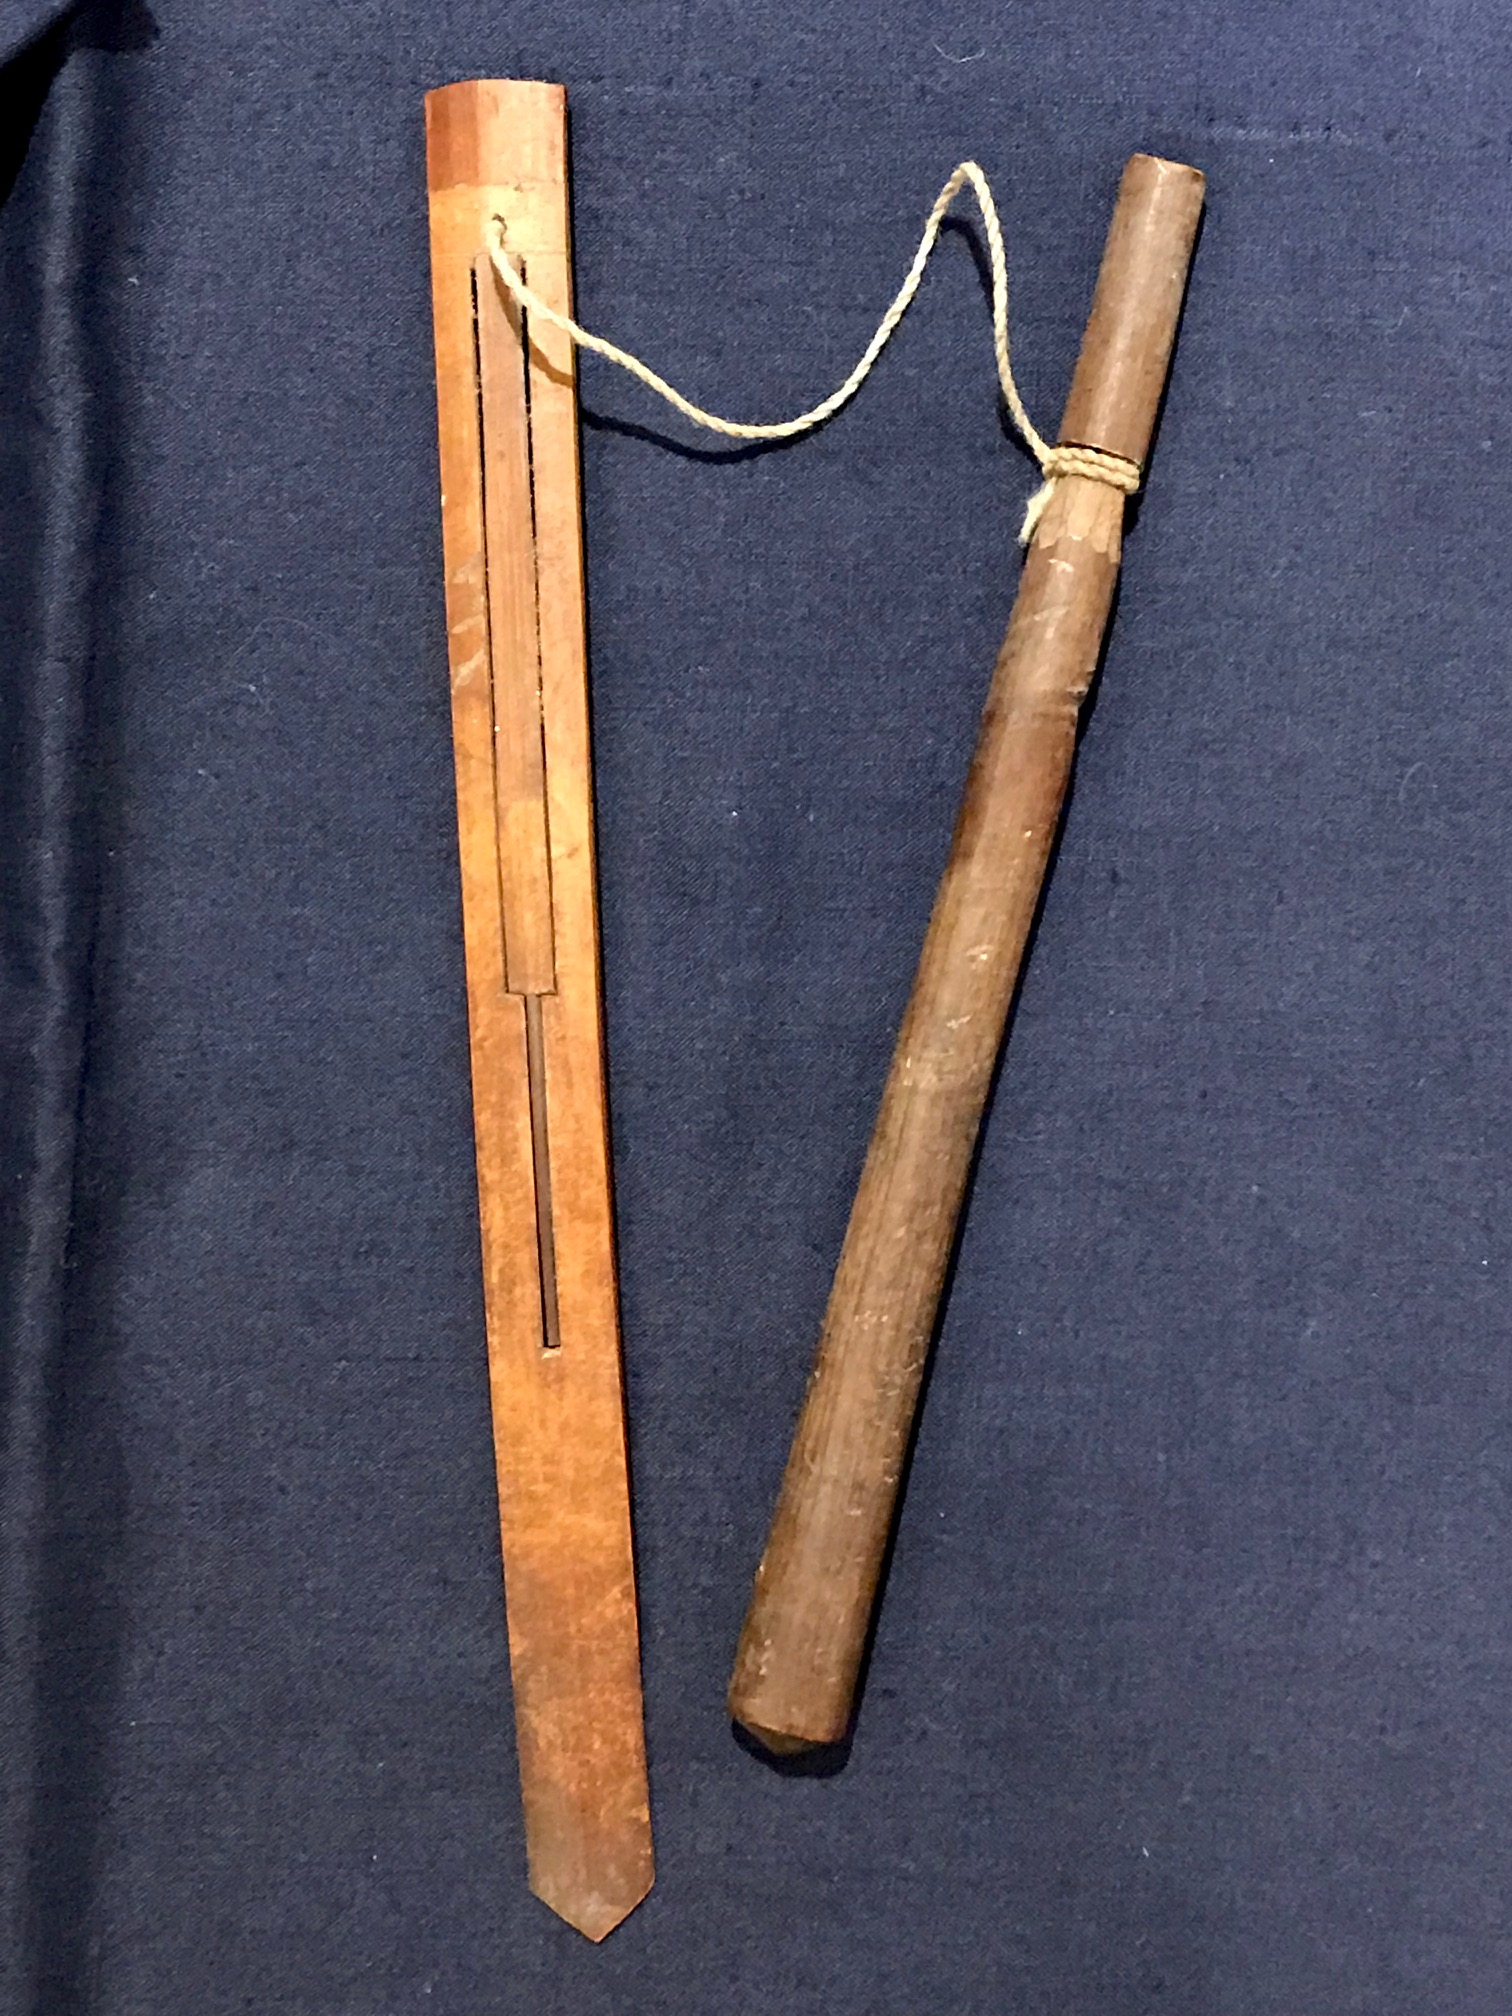 """Tribal Musical Instrument, Mouth Harp with pull stick, Sasak tribe, Lombok Island, Indonesia, Early to mid 20th c, bamboo, string, played by using the mouth as the resonating cavity and pulling the string to vibrate the bamboo. There are many traditional songs written for it. It has been referred to as a 'mind cleaner' Because it uses the mouth to resonate, it clears the brain of unclear thoughts. 7 1/2"""" x 5/8"""" x 1/8"""", pull stick - 6 3/4"""" x 3/8, $65., thedavidalancollection.com , solana beach, ca"""